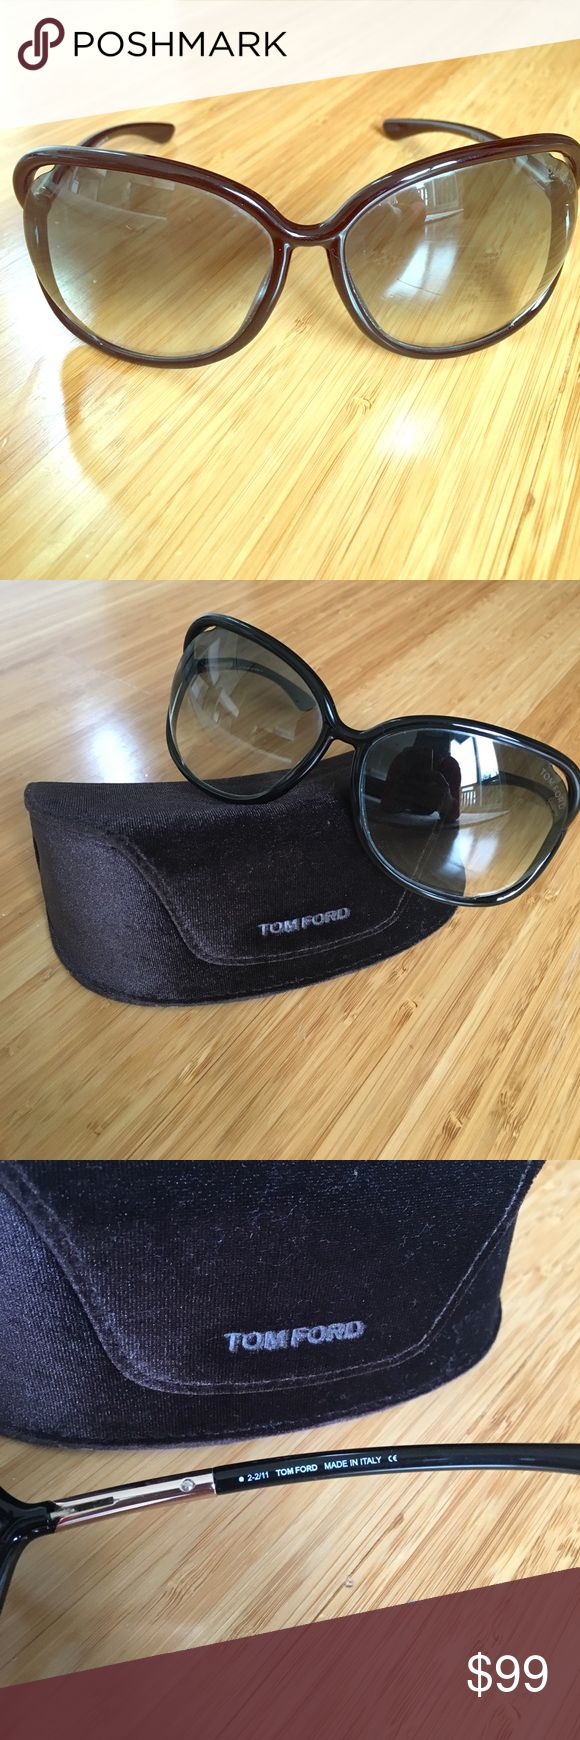 Tom Ford 🕶 Raquel Style Tom Ford Raquel shades with velvet Tom Ford case. I do not have the cleaning cloth unfortunately.  Style is TF76. Color is black. Tom Ford Accessories Sunglasses